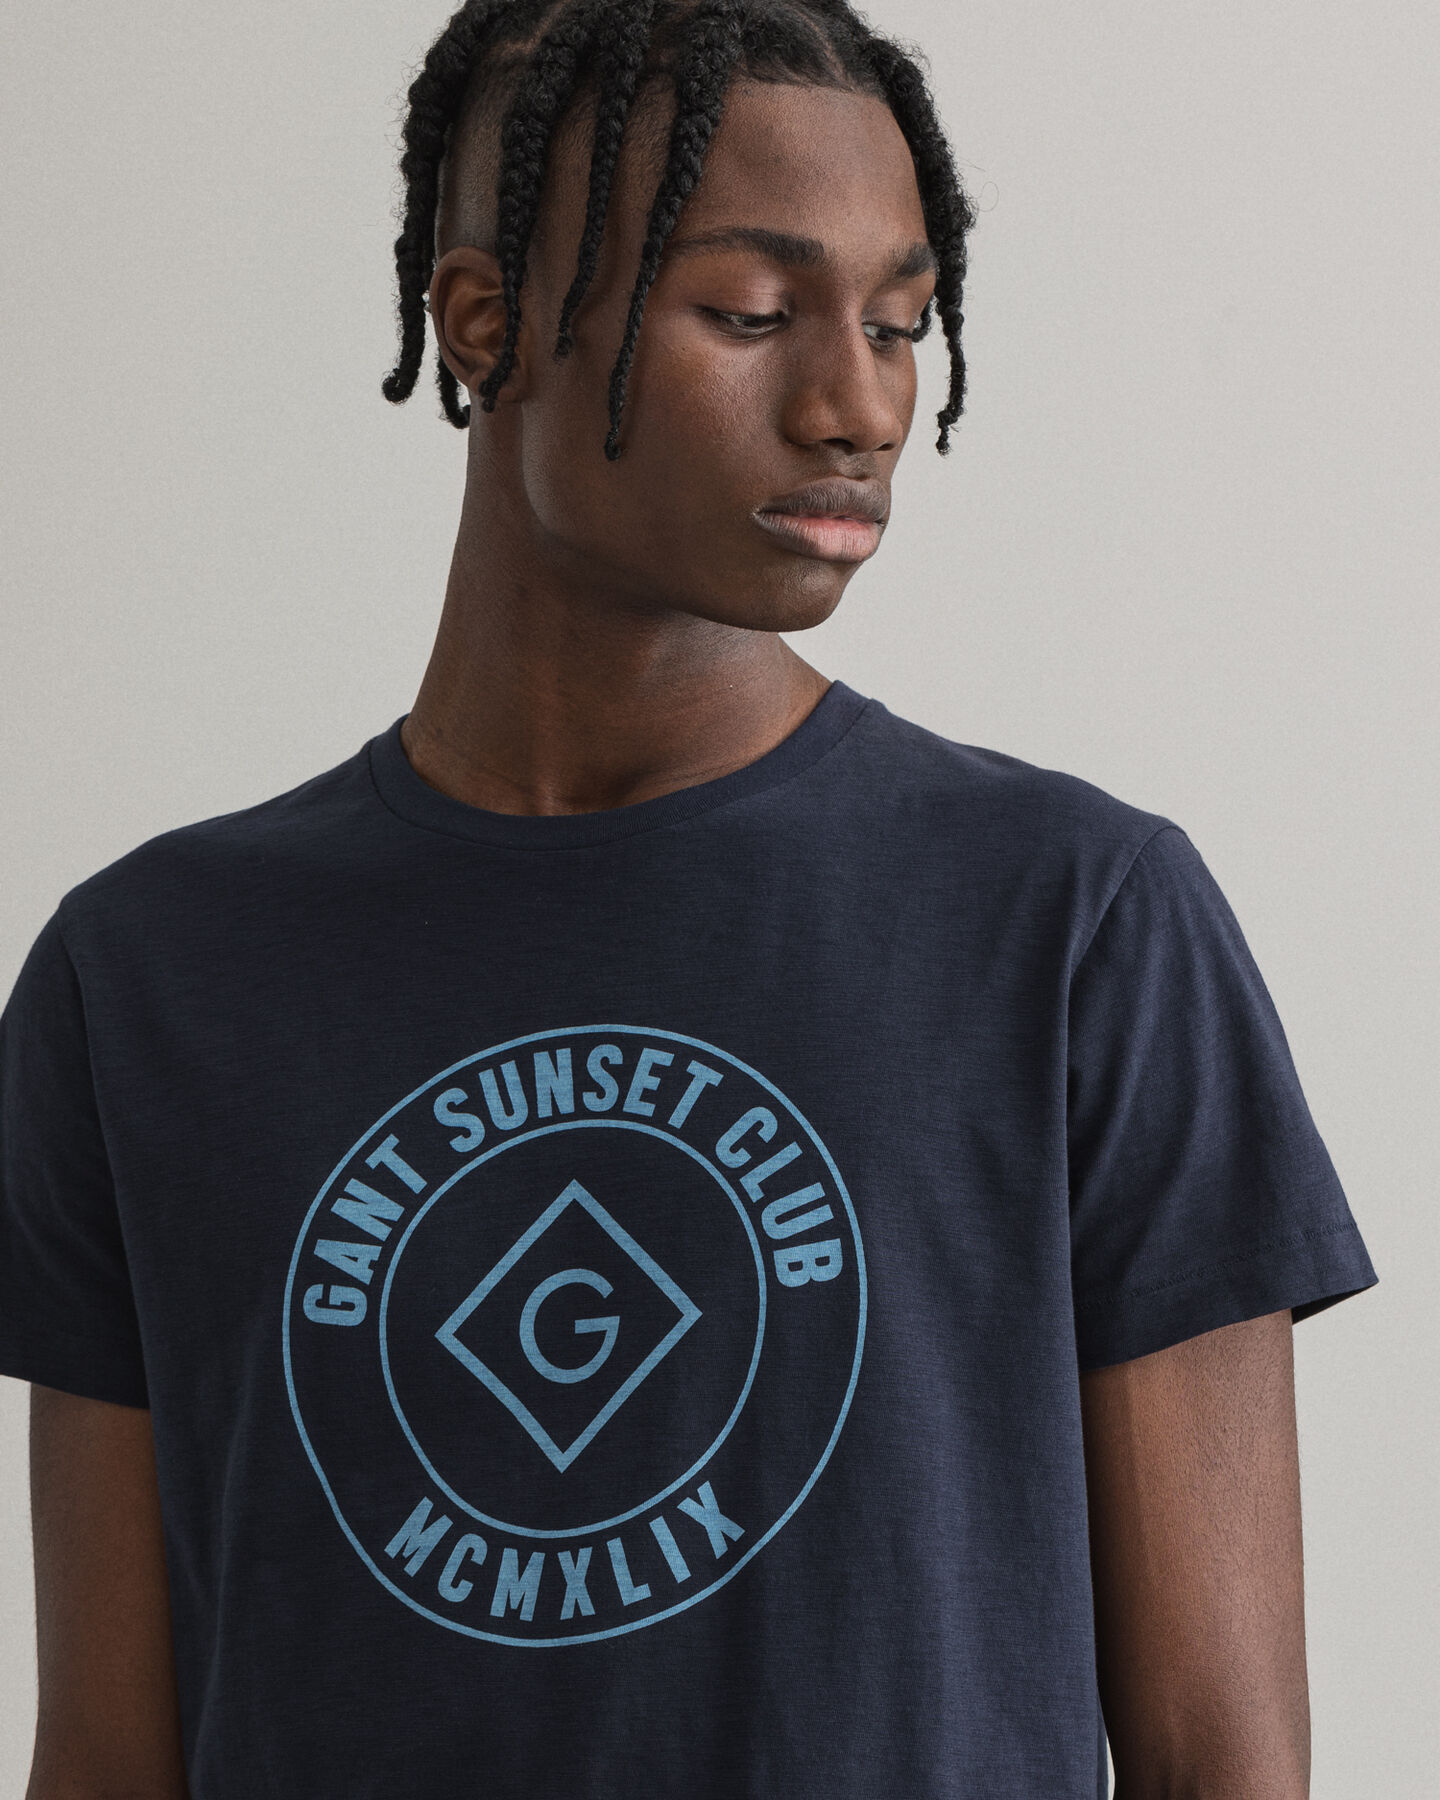 Sunset Club T-Shirt mit Print